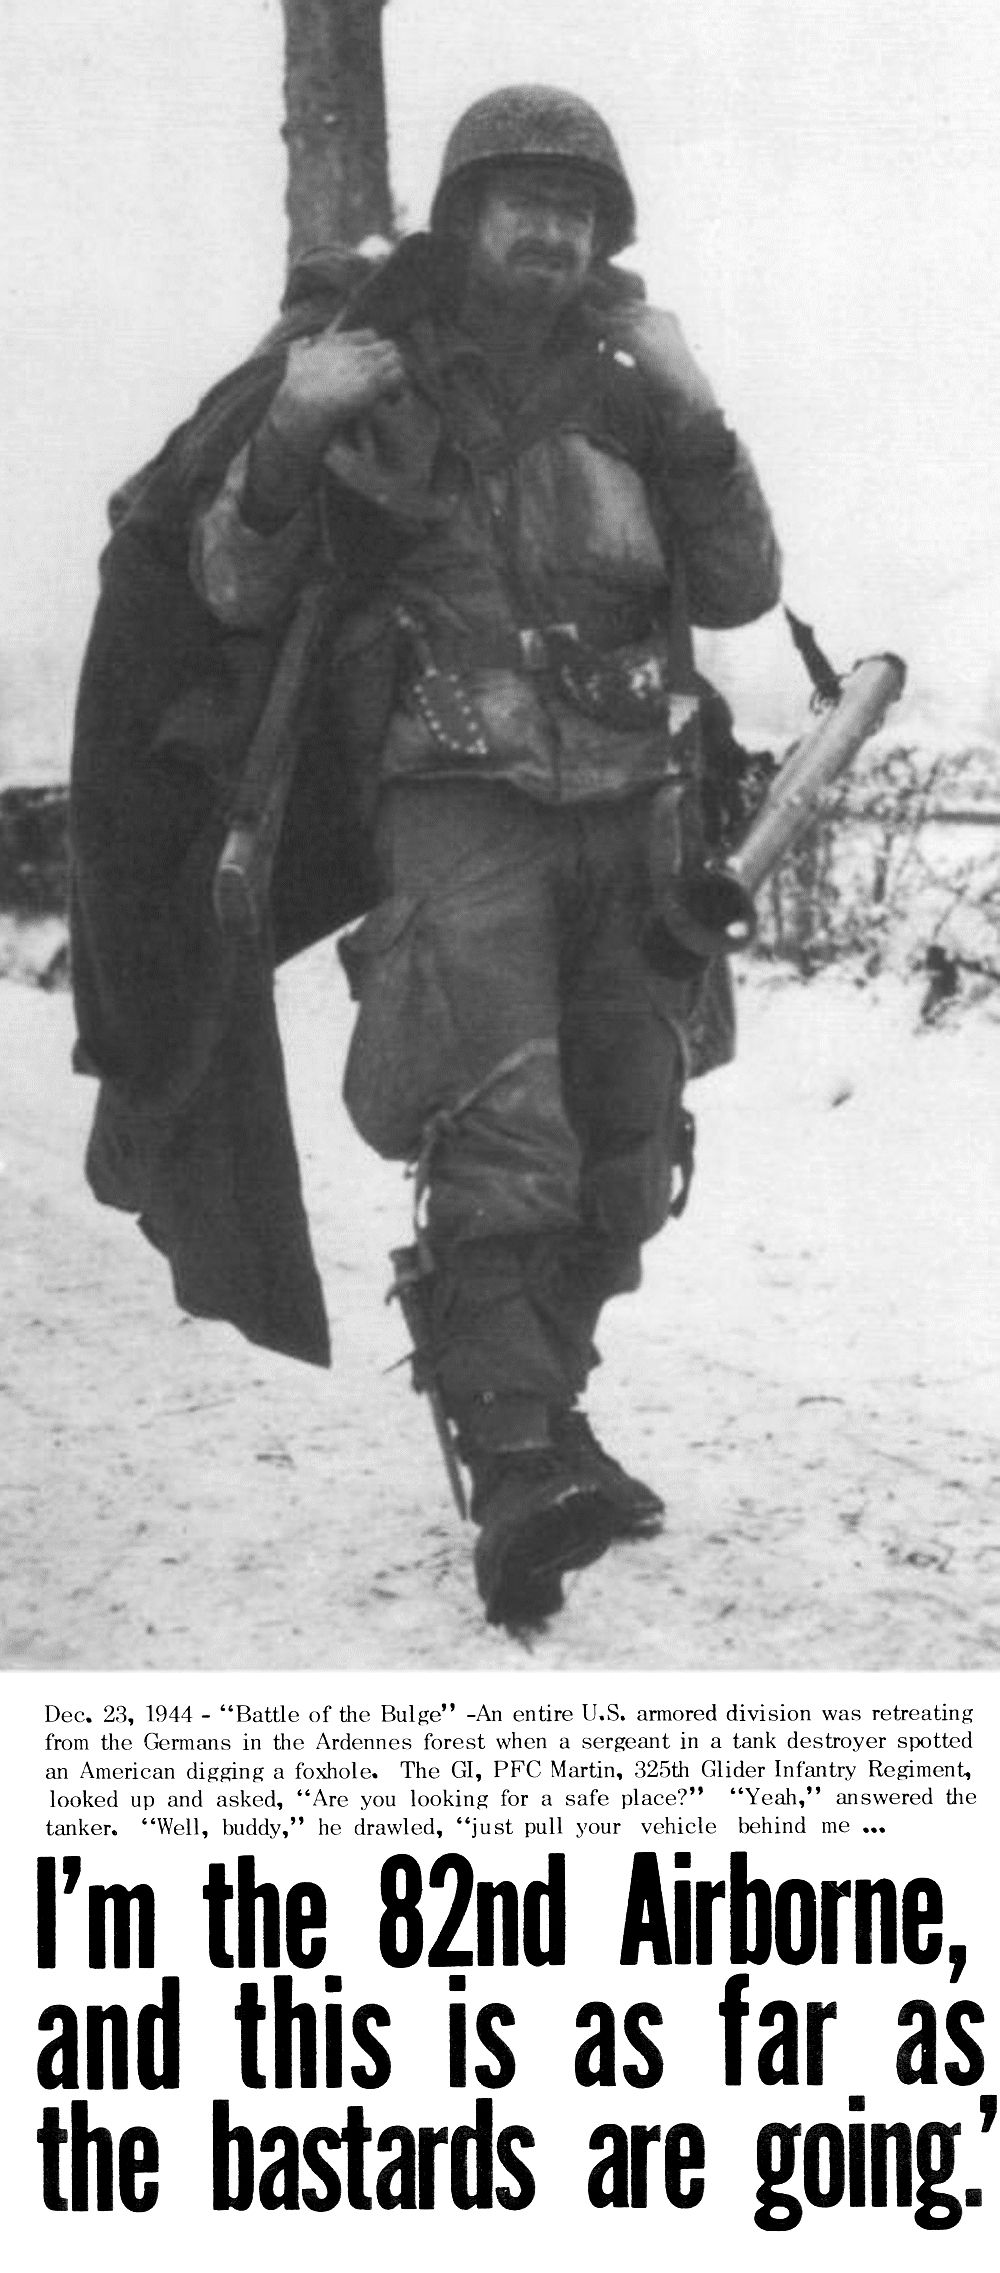 American paratrooper and Soviet tanker